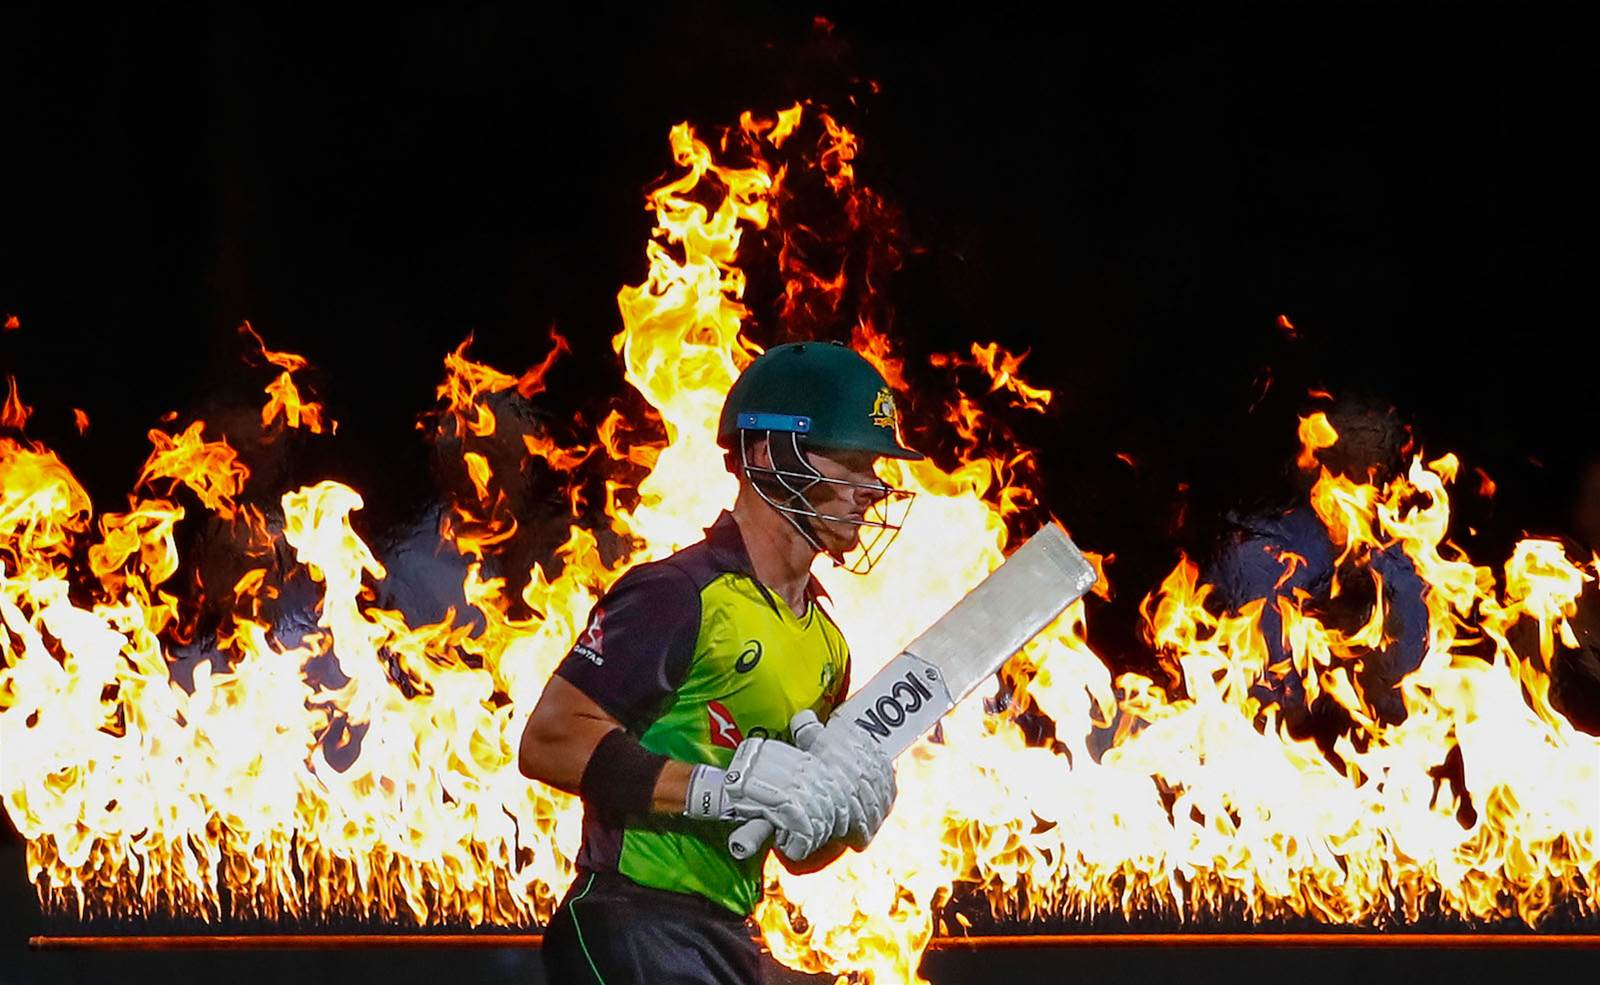 WATCH! D'Arcy Short's 23 sensational sixes!